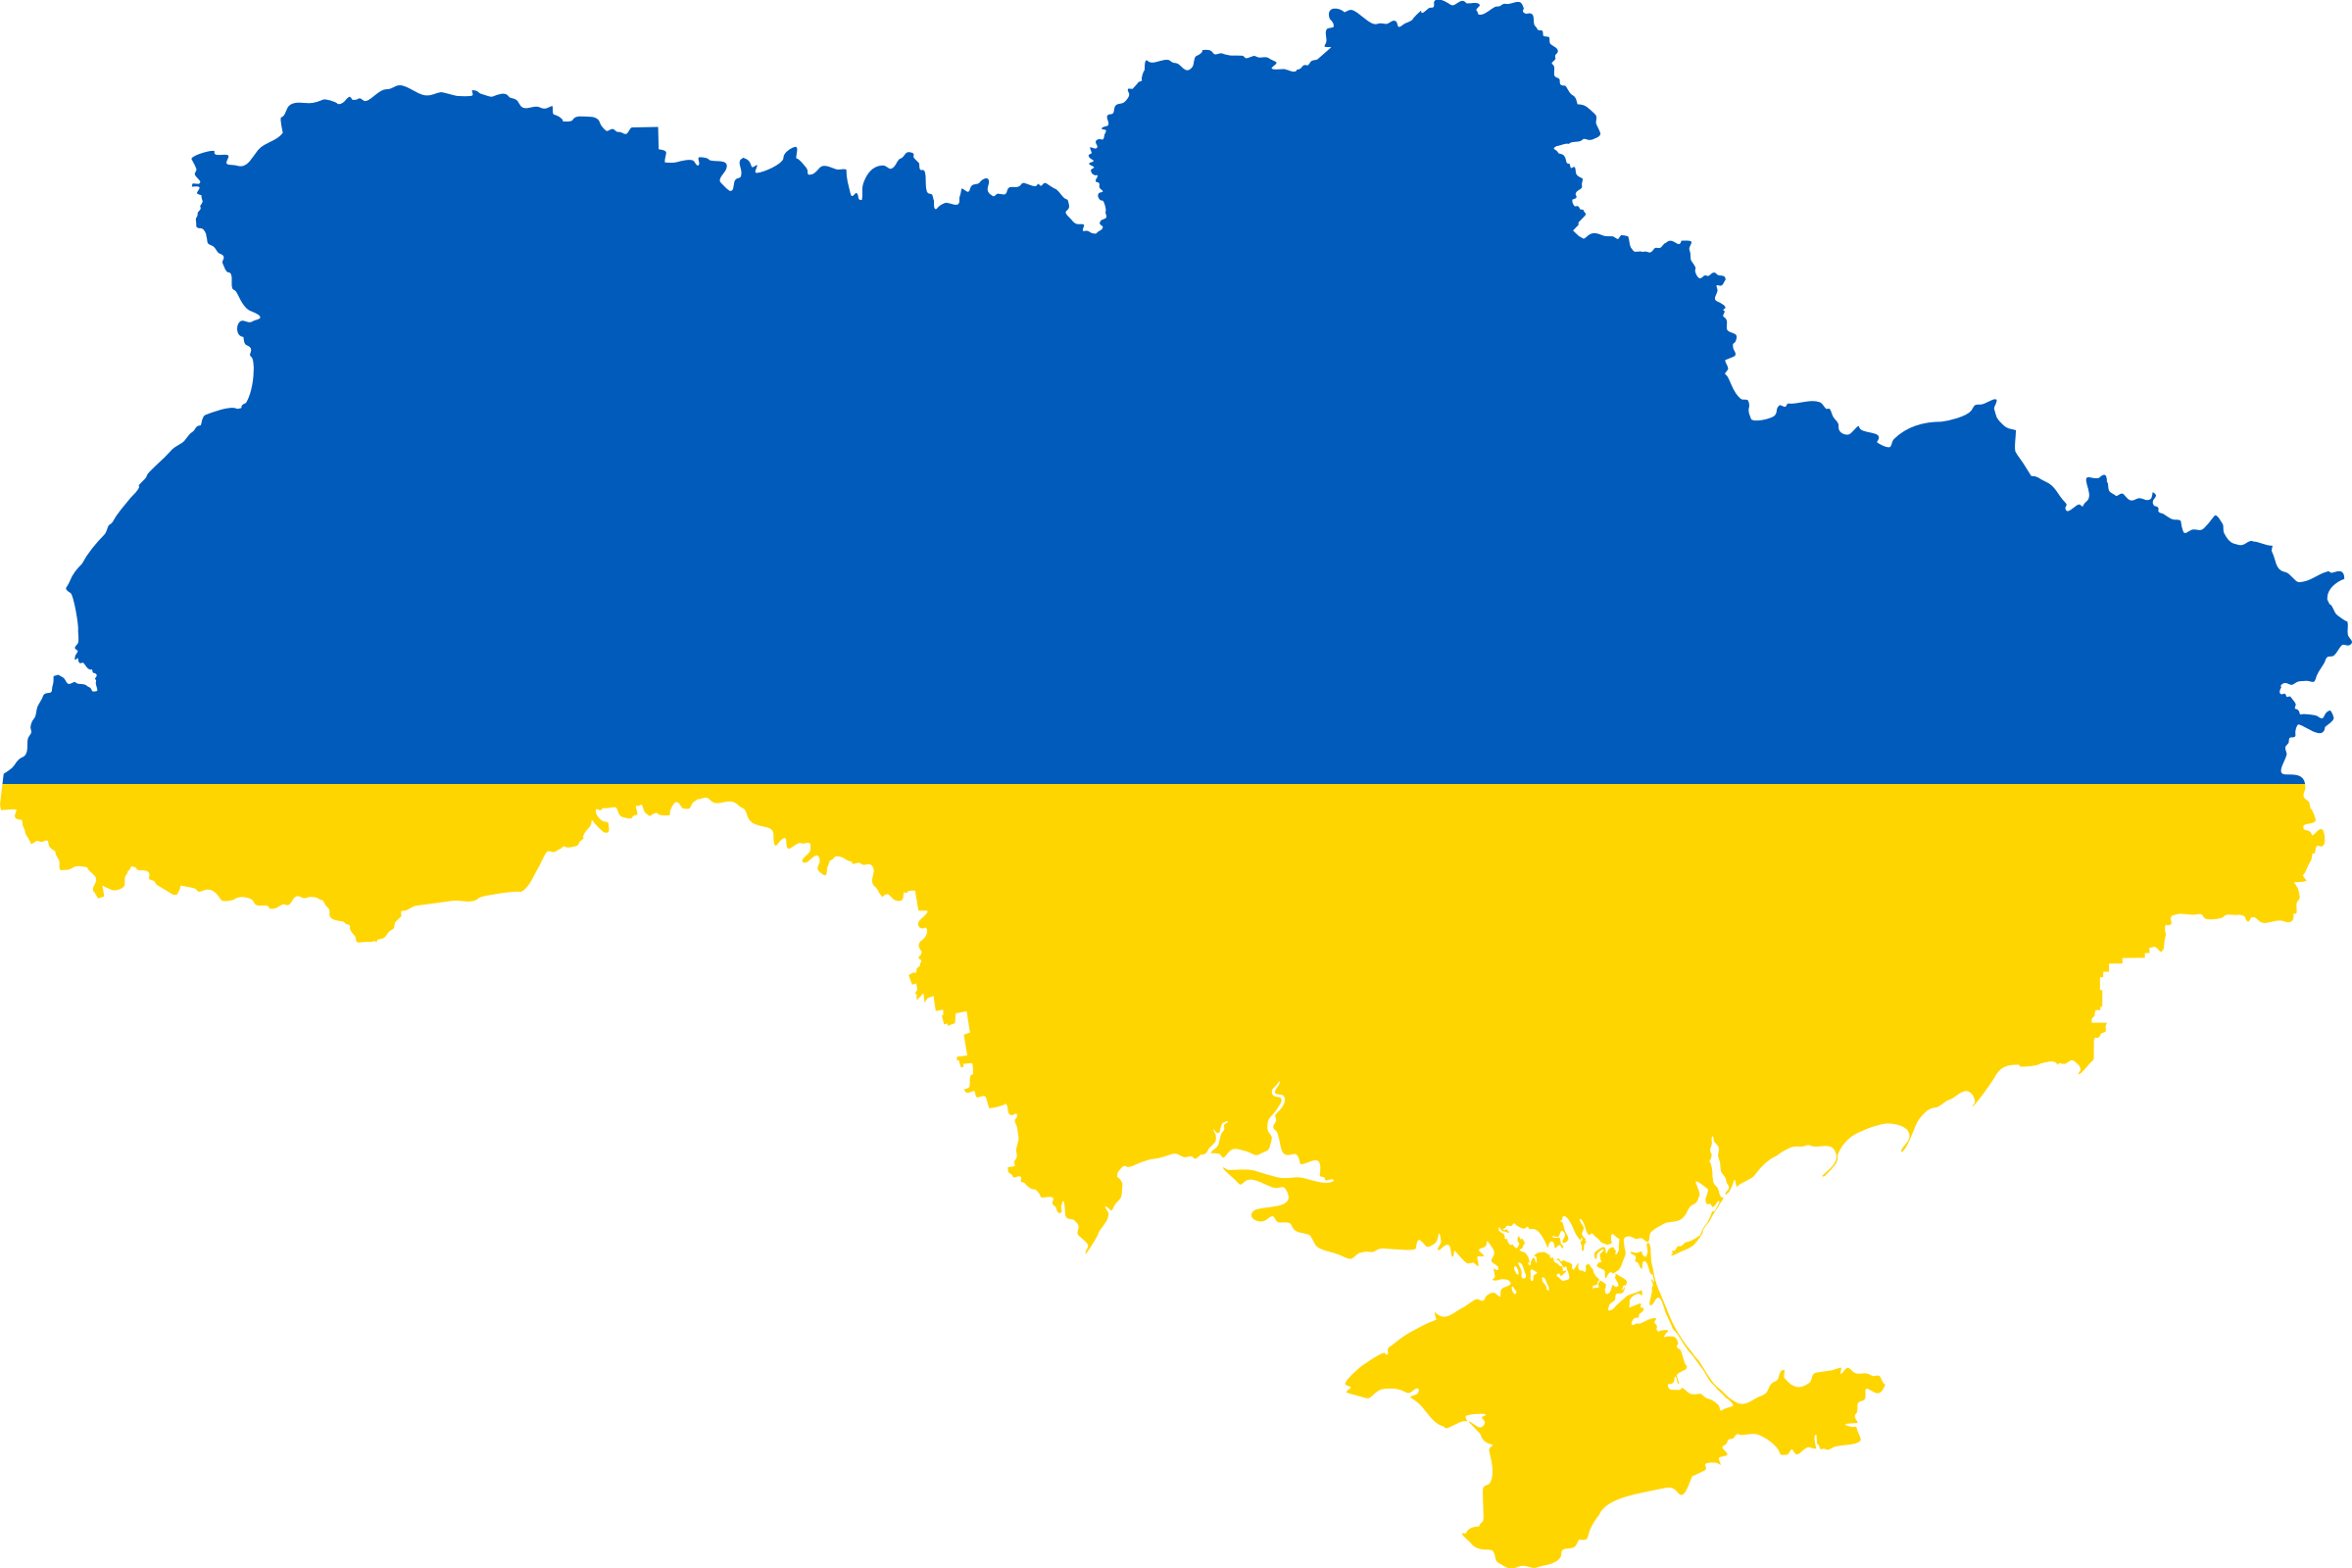 Clipart Ukraine Flag Map - Ukraine map